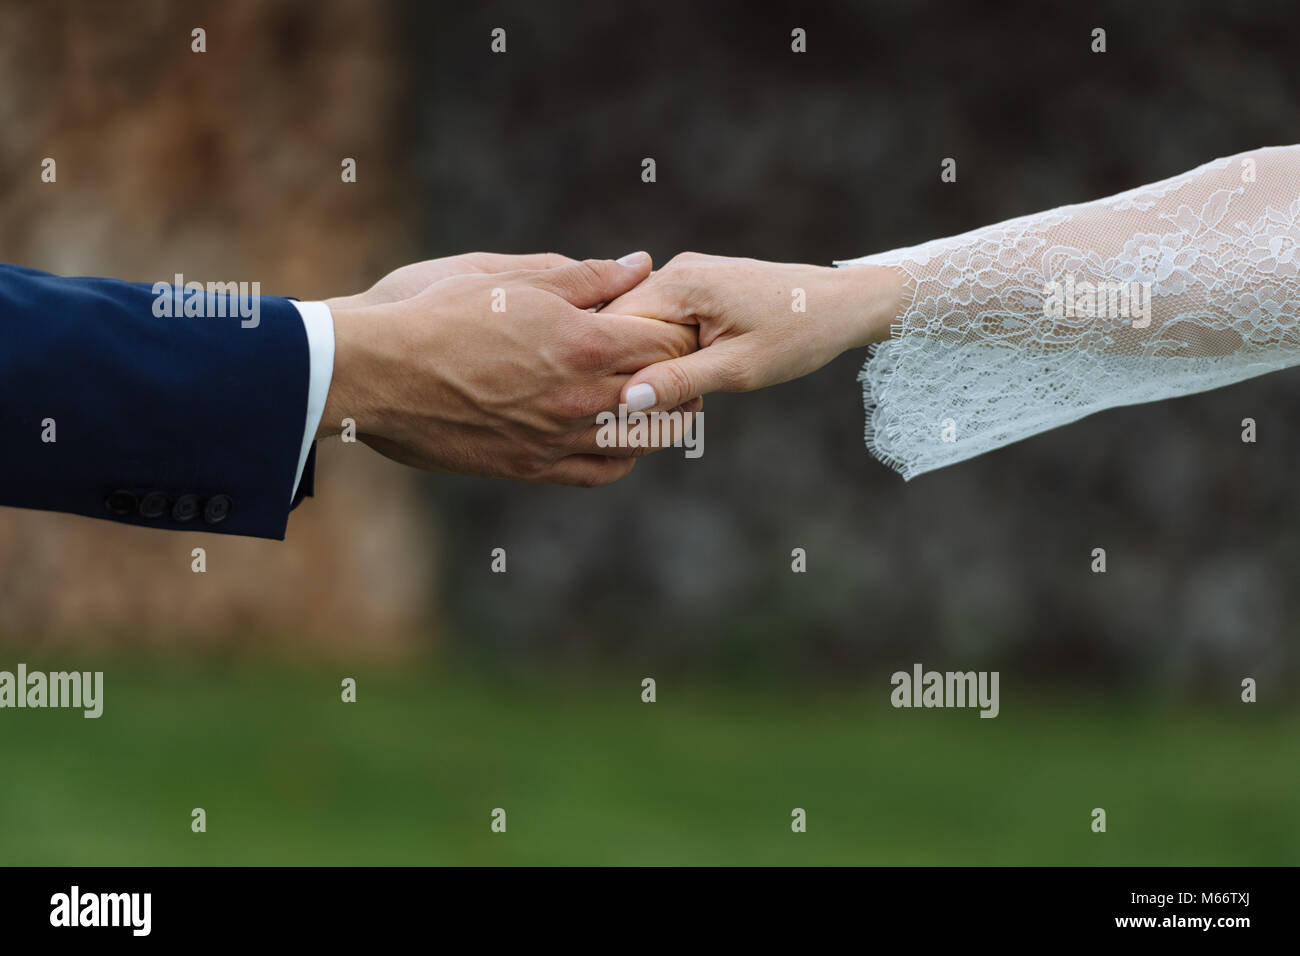 Symbol picture love, wedding, partnership, Wedding couple, groom and bride reach out their hands - Stock Image